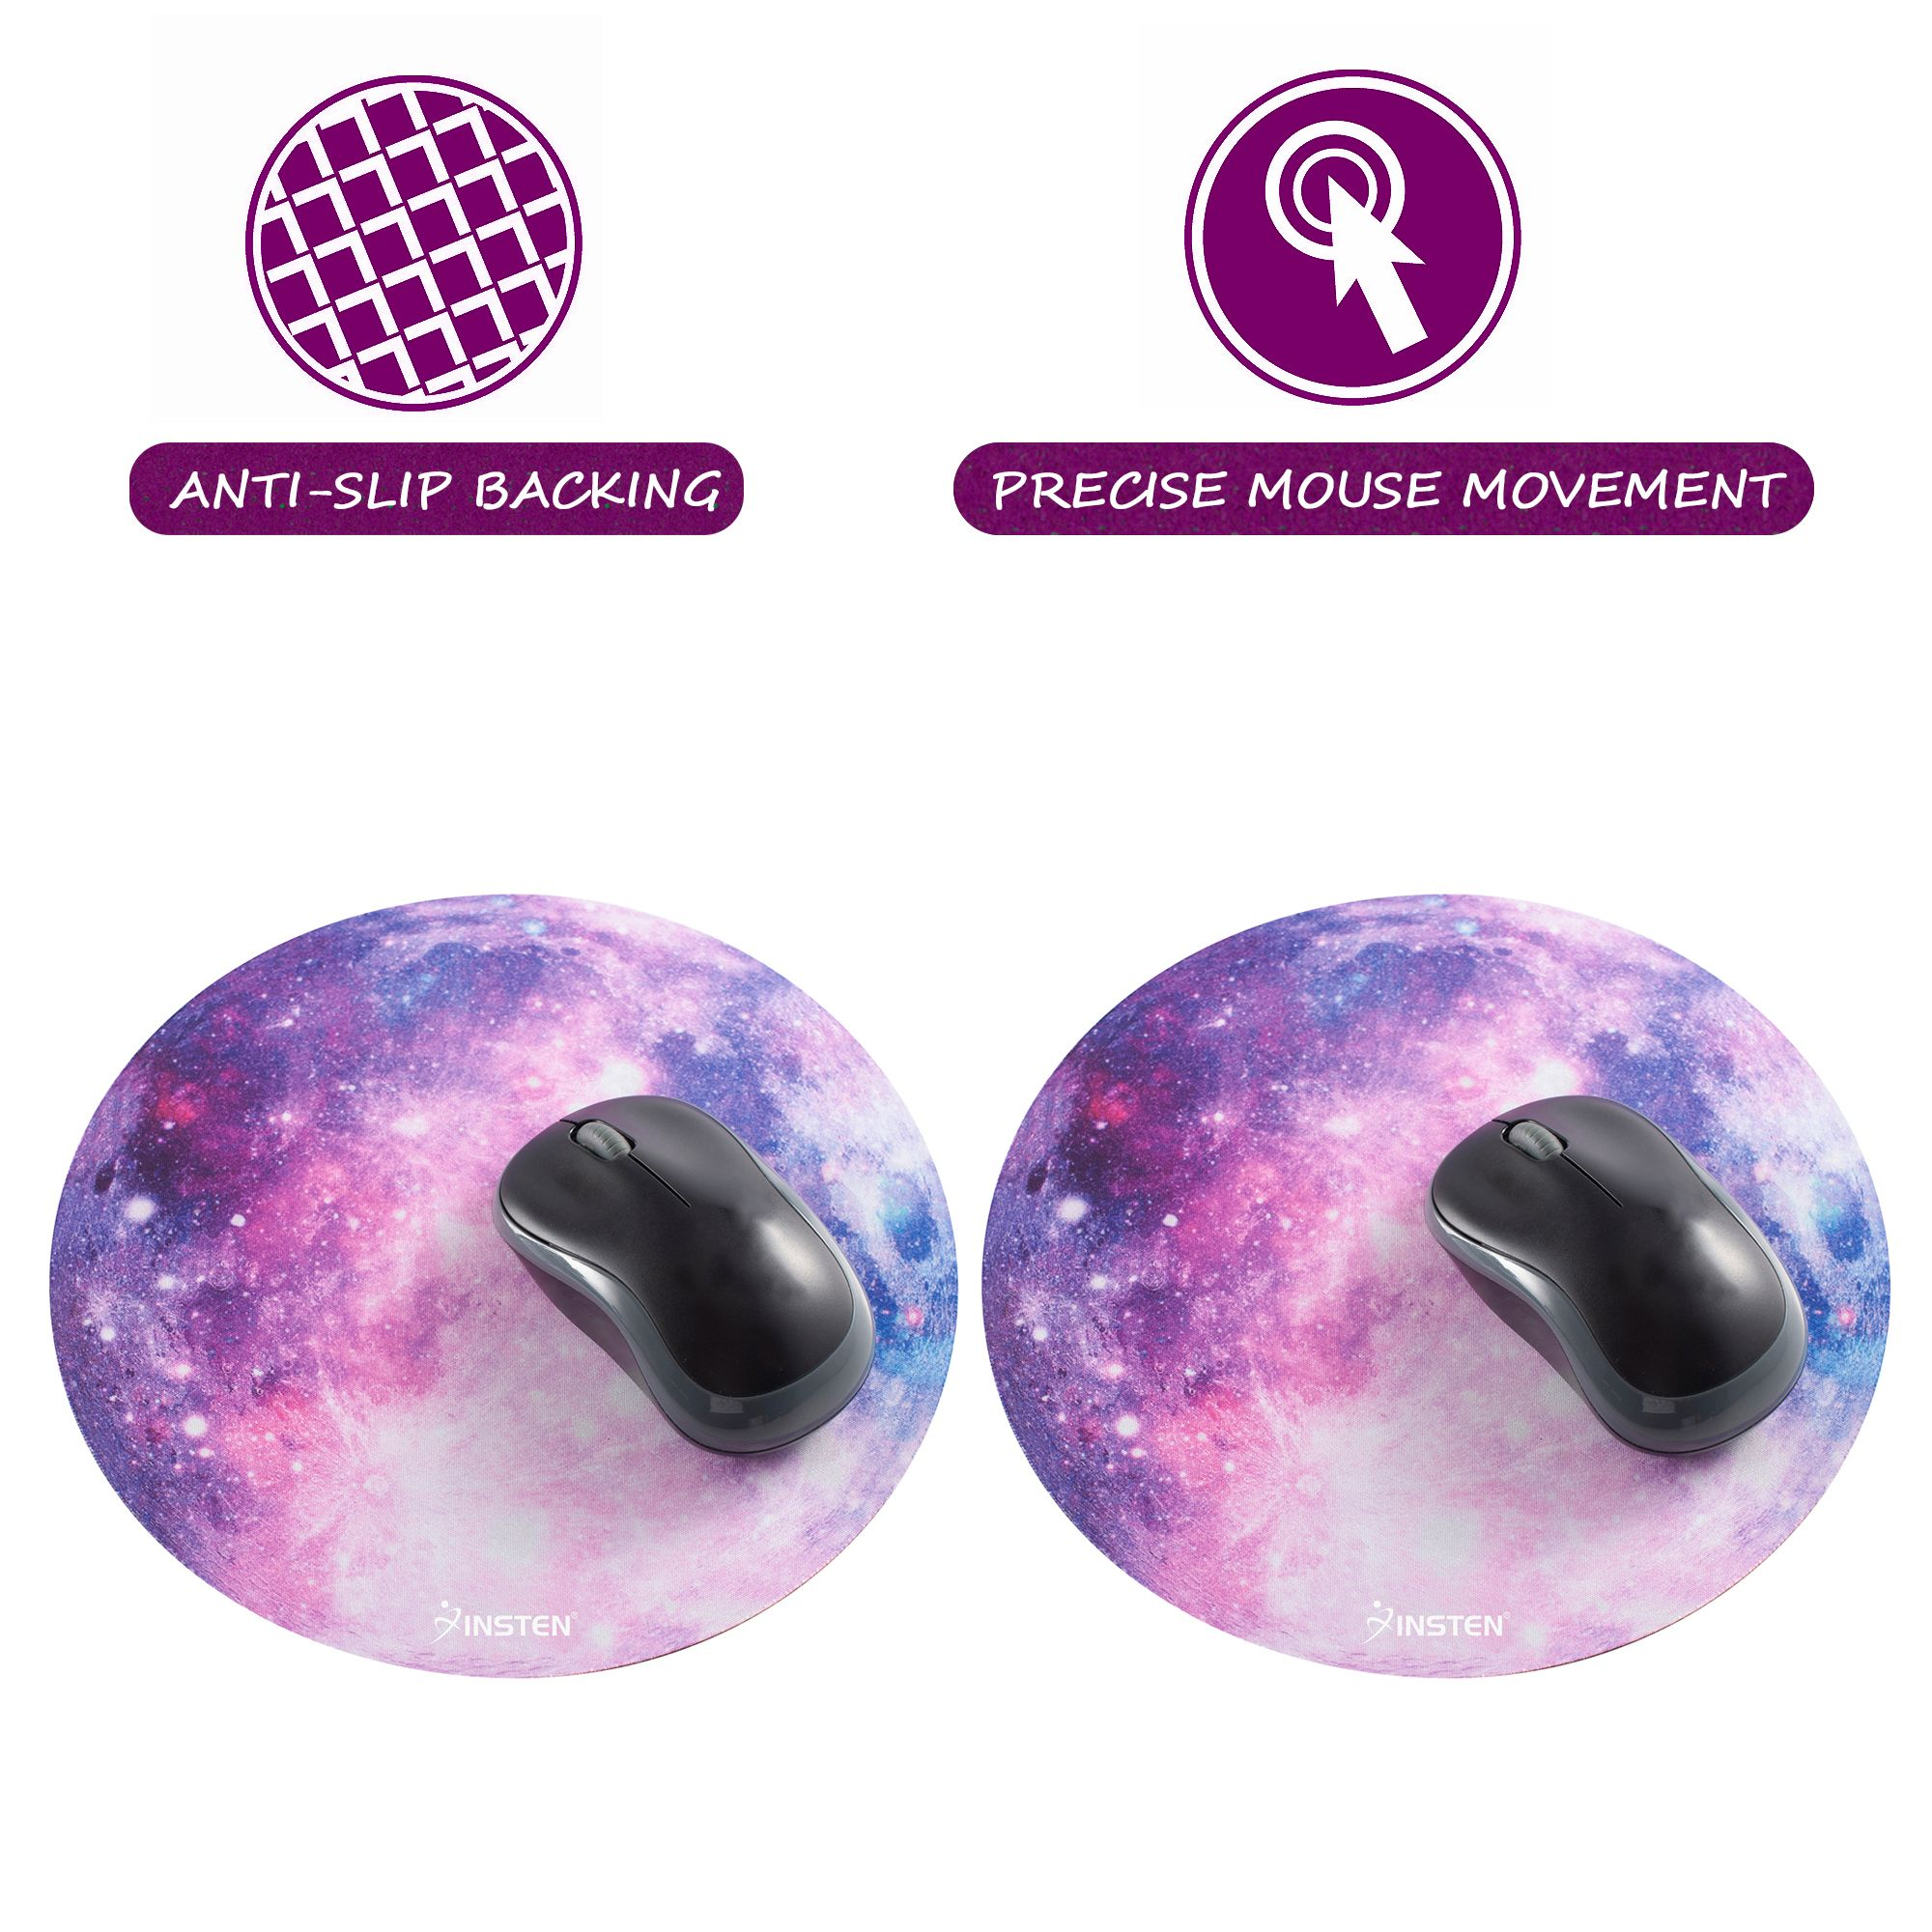 "Mouse pad by Insten 2-pack Galactic Space Design Round Galaxy Mouse Mat Pad Anti-Slip Backing and Silky Smooth Surface 2mm Ultra Thick Diameter: 8.46"" For Laptop PC Gaming Home Office - Purple Nebula"